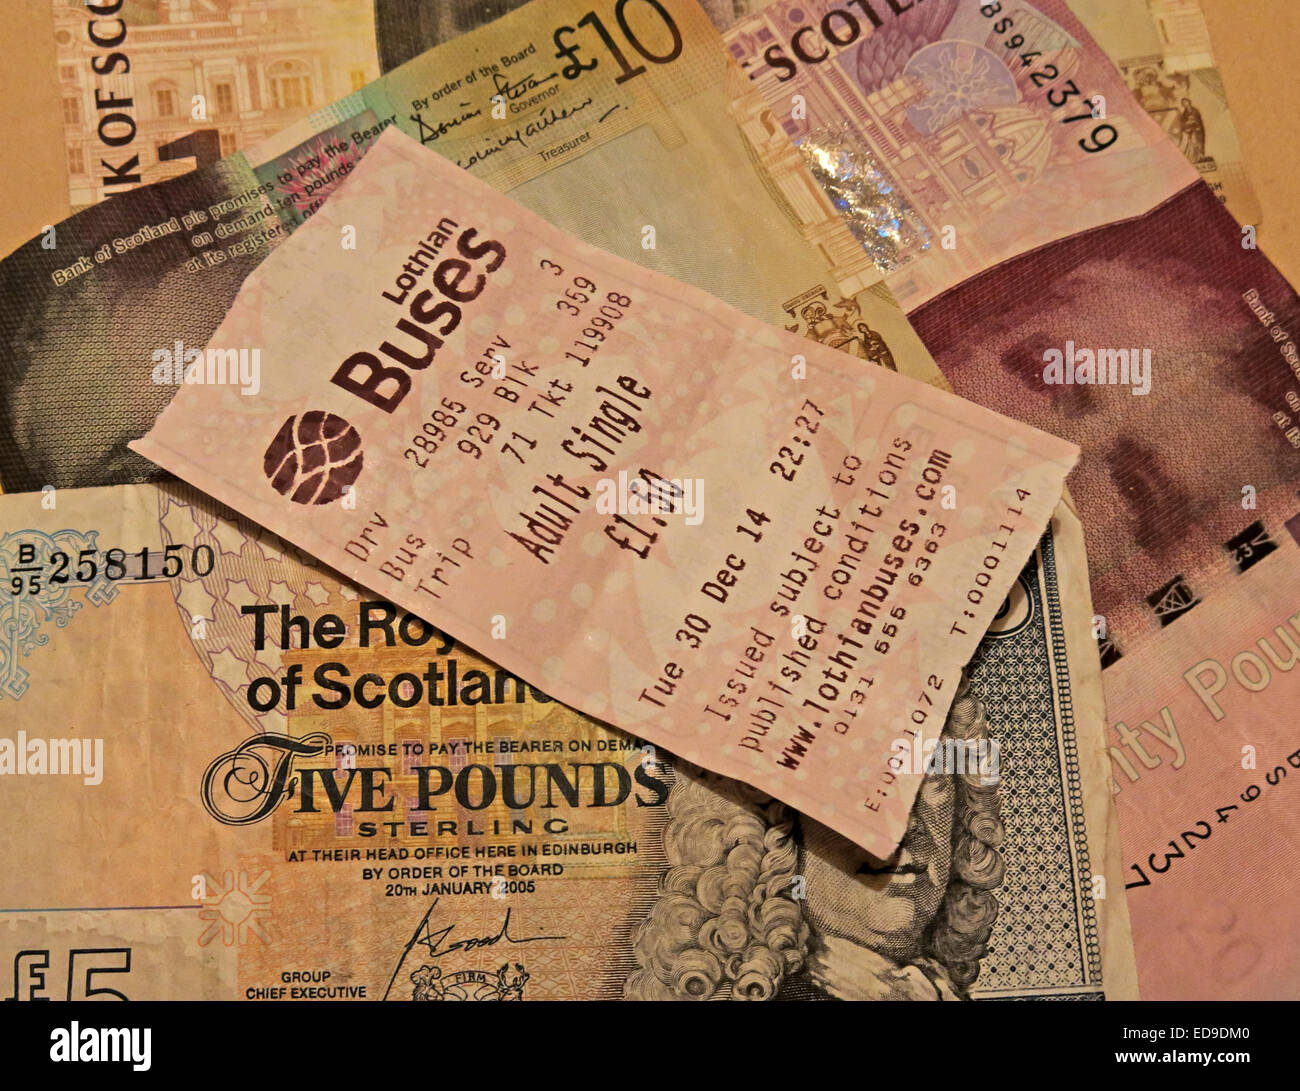 Lothian Buses bus Ticket and Scots banknotes from Edinburgh, Scotland, UK sideways - Stock Image